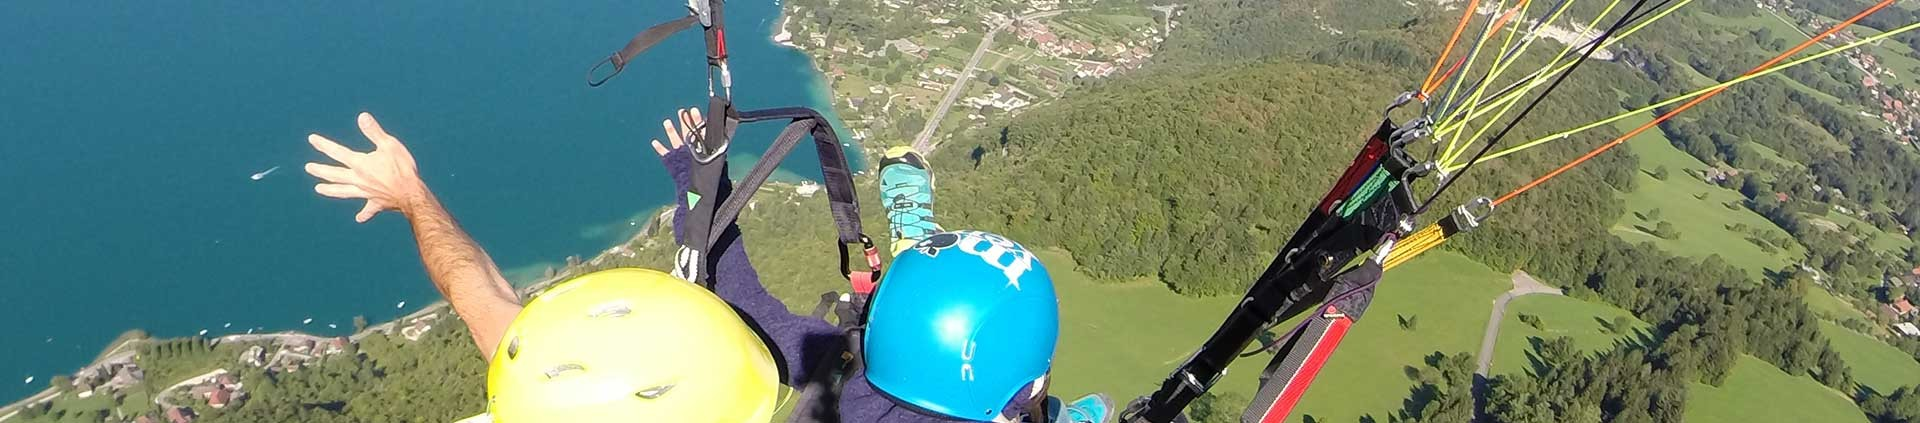 Paragliding school Annecy France